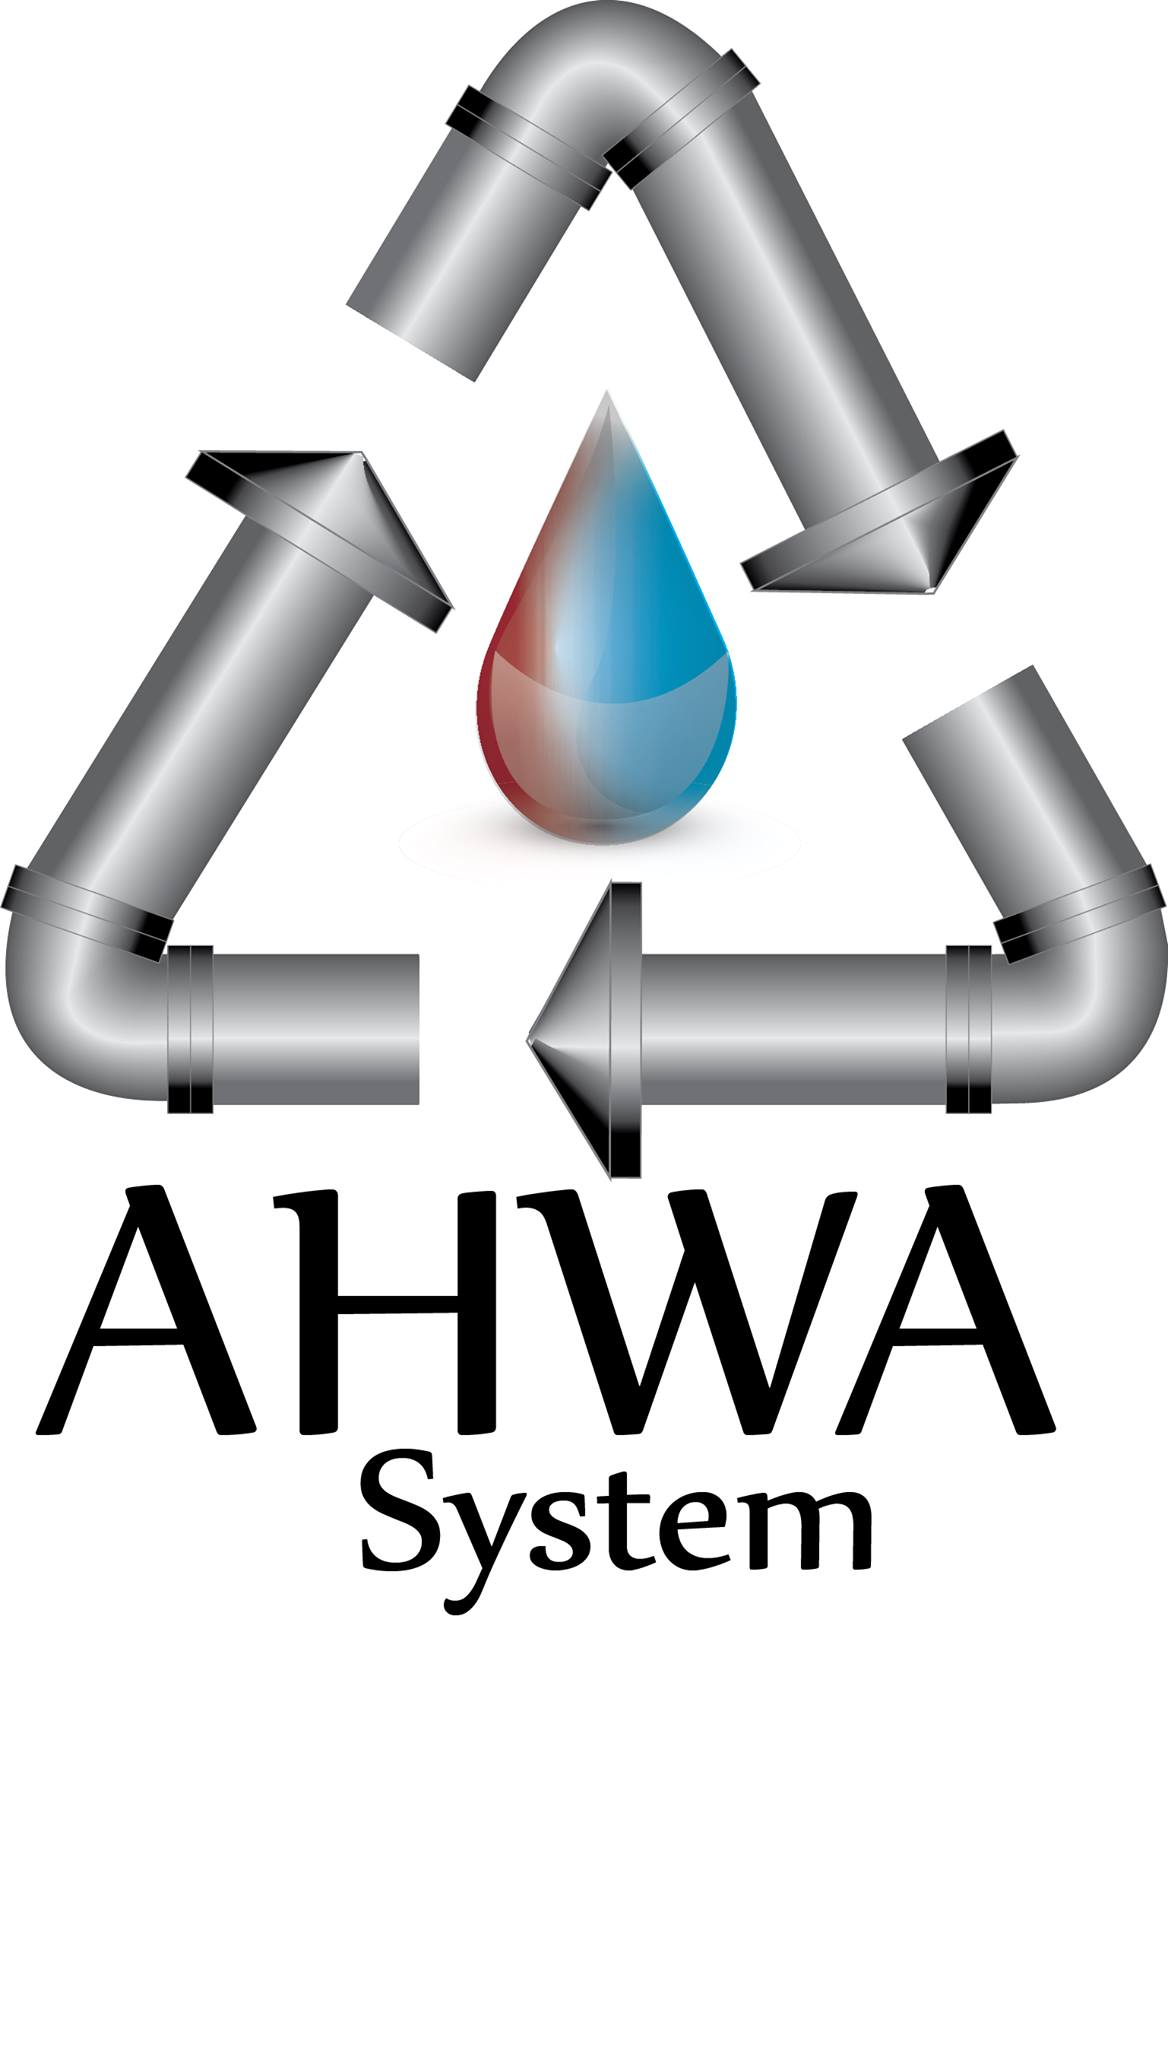 AHWA systems